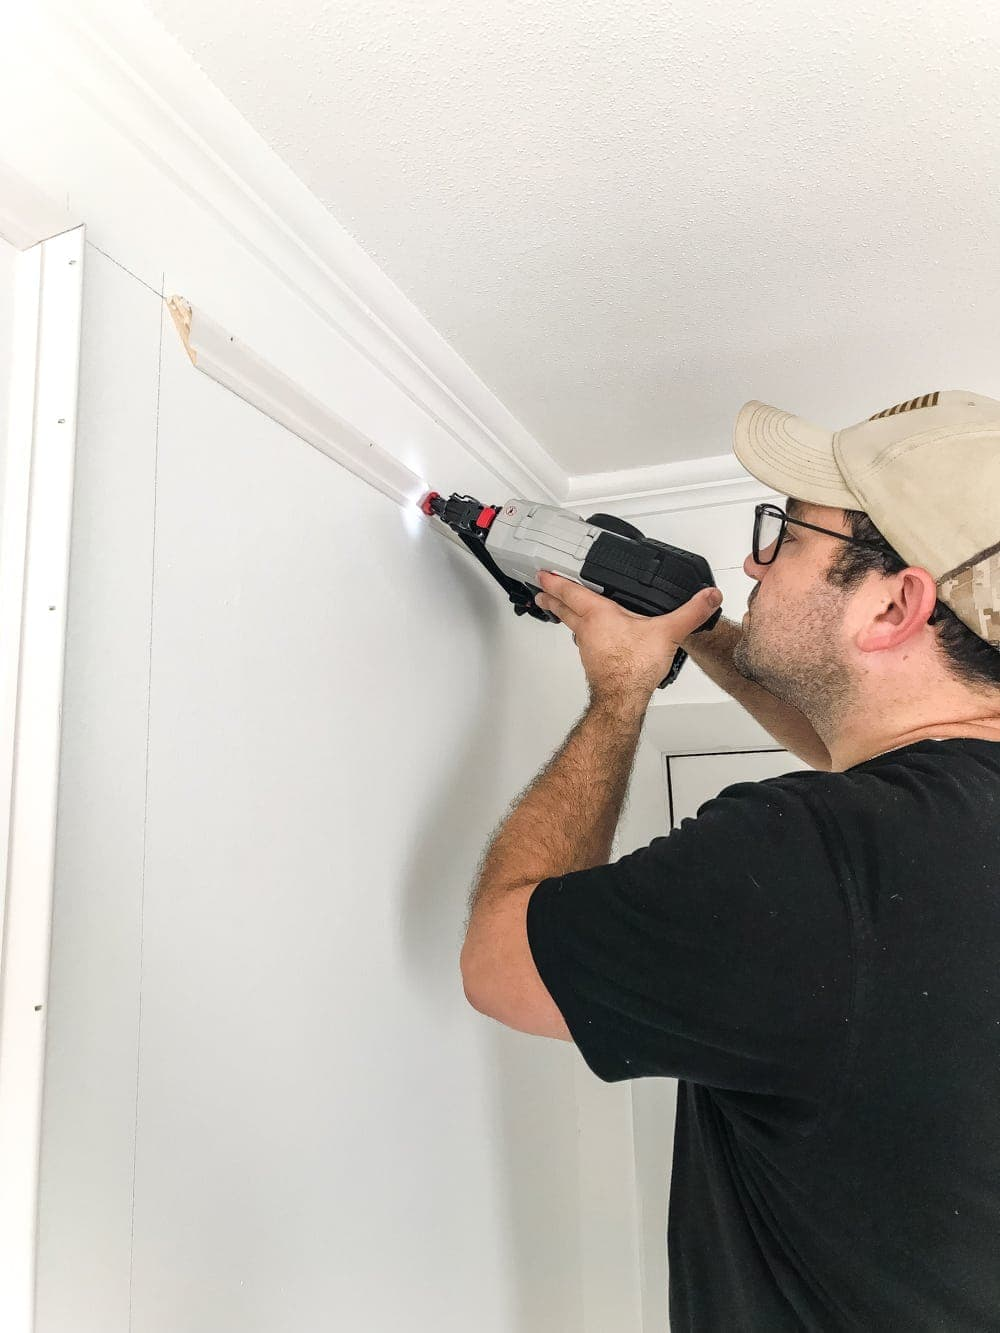 brad nailer for attaching picture frame molding